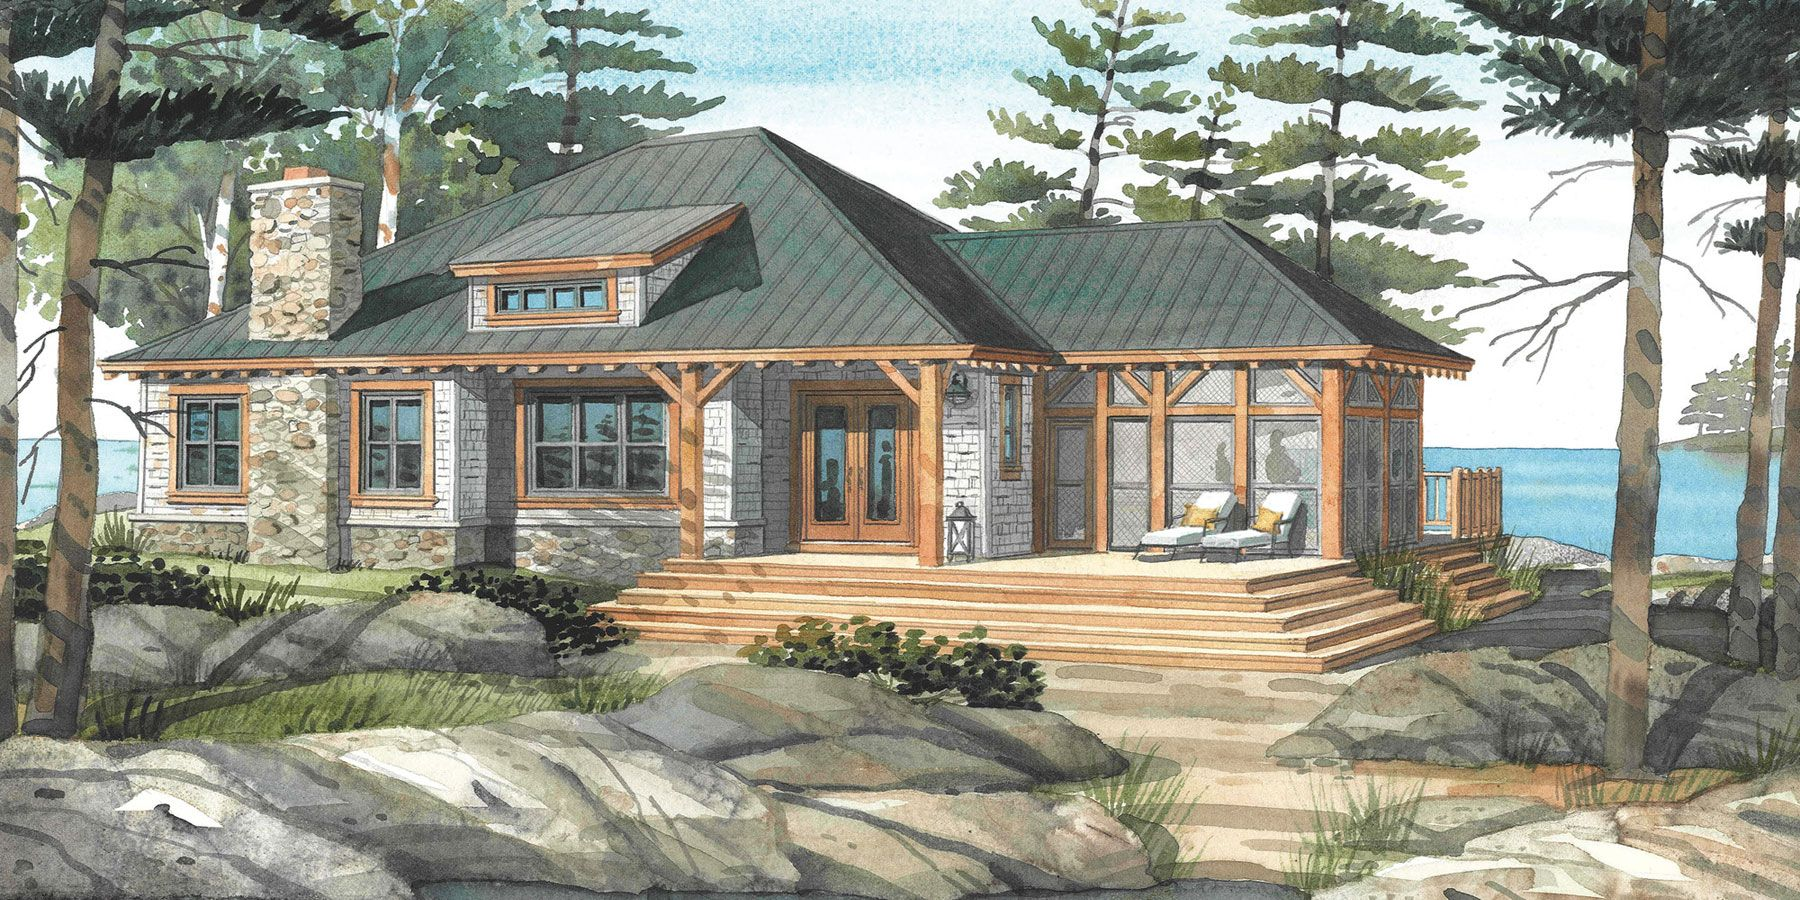 Cottage Style House Plans cottage style house plans 61 111 Cottage House Plans With Porches Normerica Custom Timber Frame Home Designs